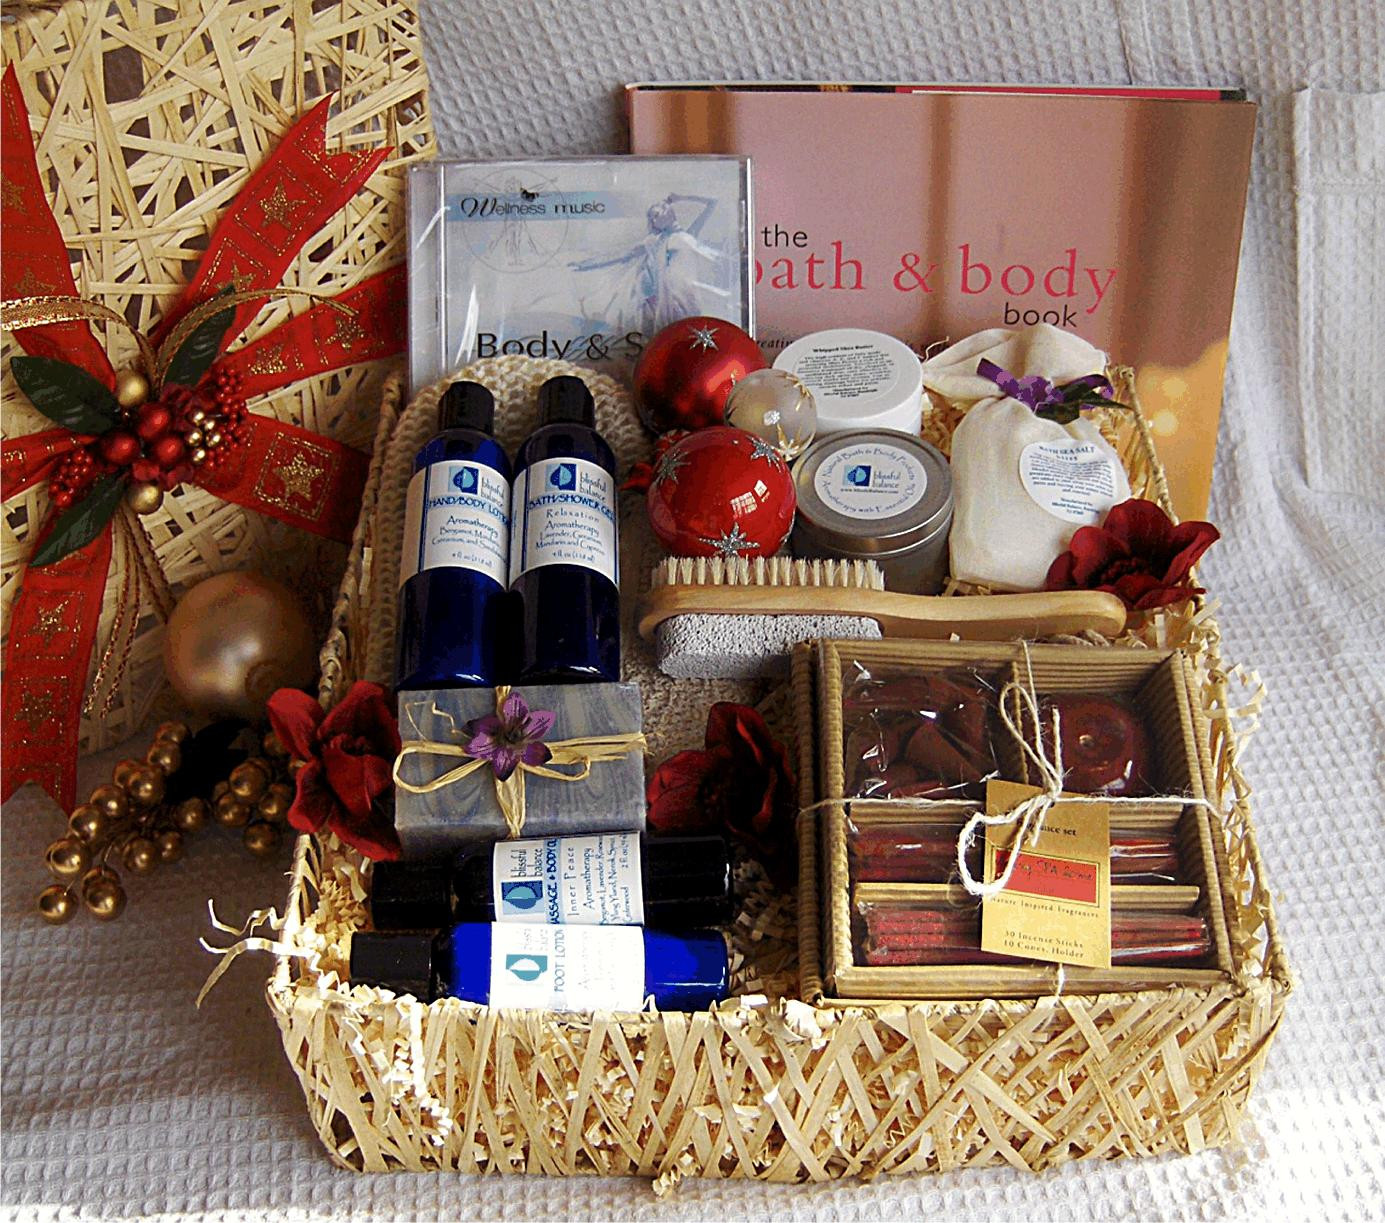 Best ideas about Basket Gift Ideas . Save or Pin 13 Gift Basket Ideas For Your Great Gifts Women wellness Now.